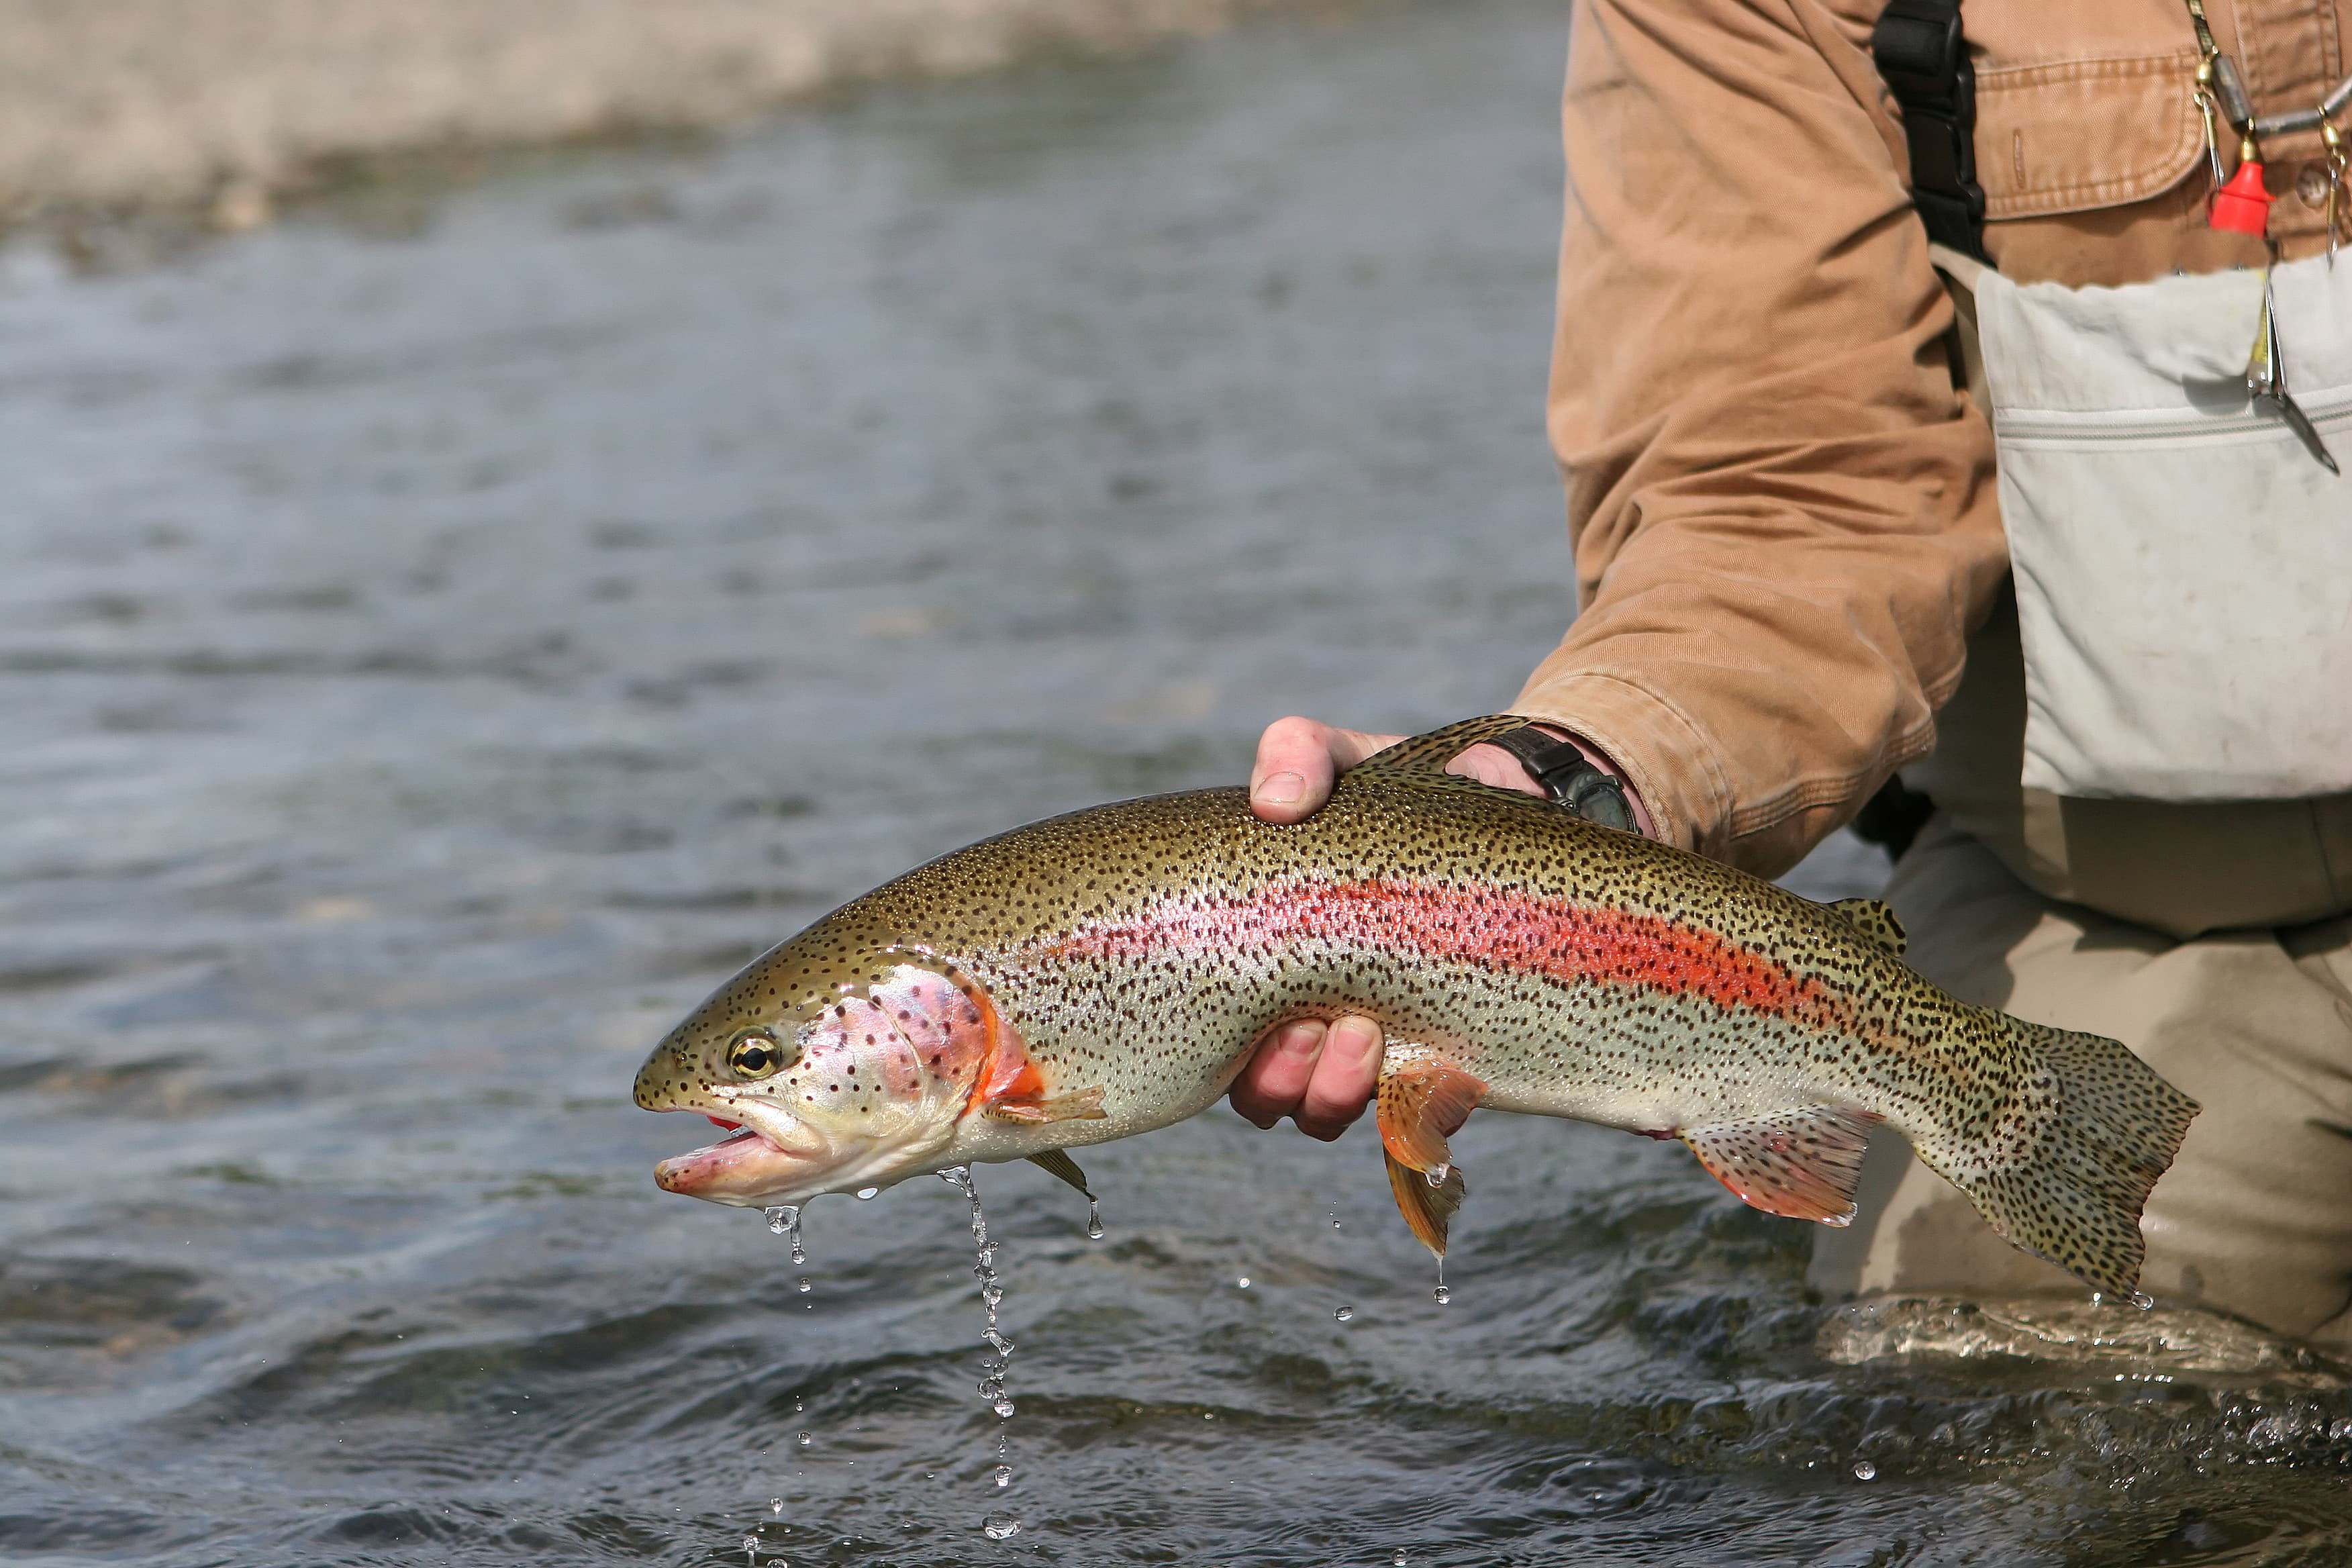 Man lifting an Alaska rainbow trout from the water